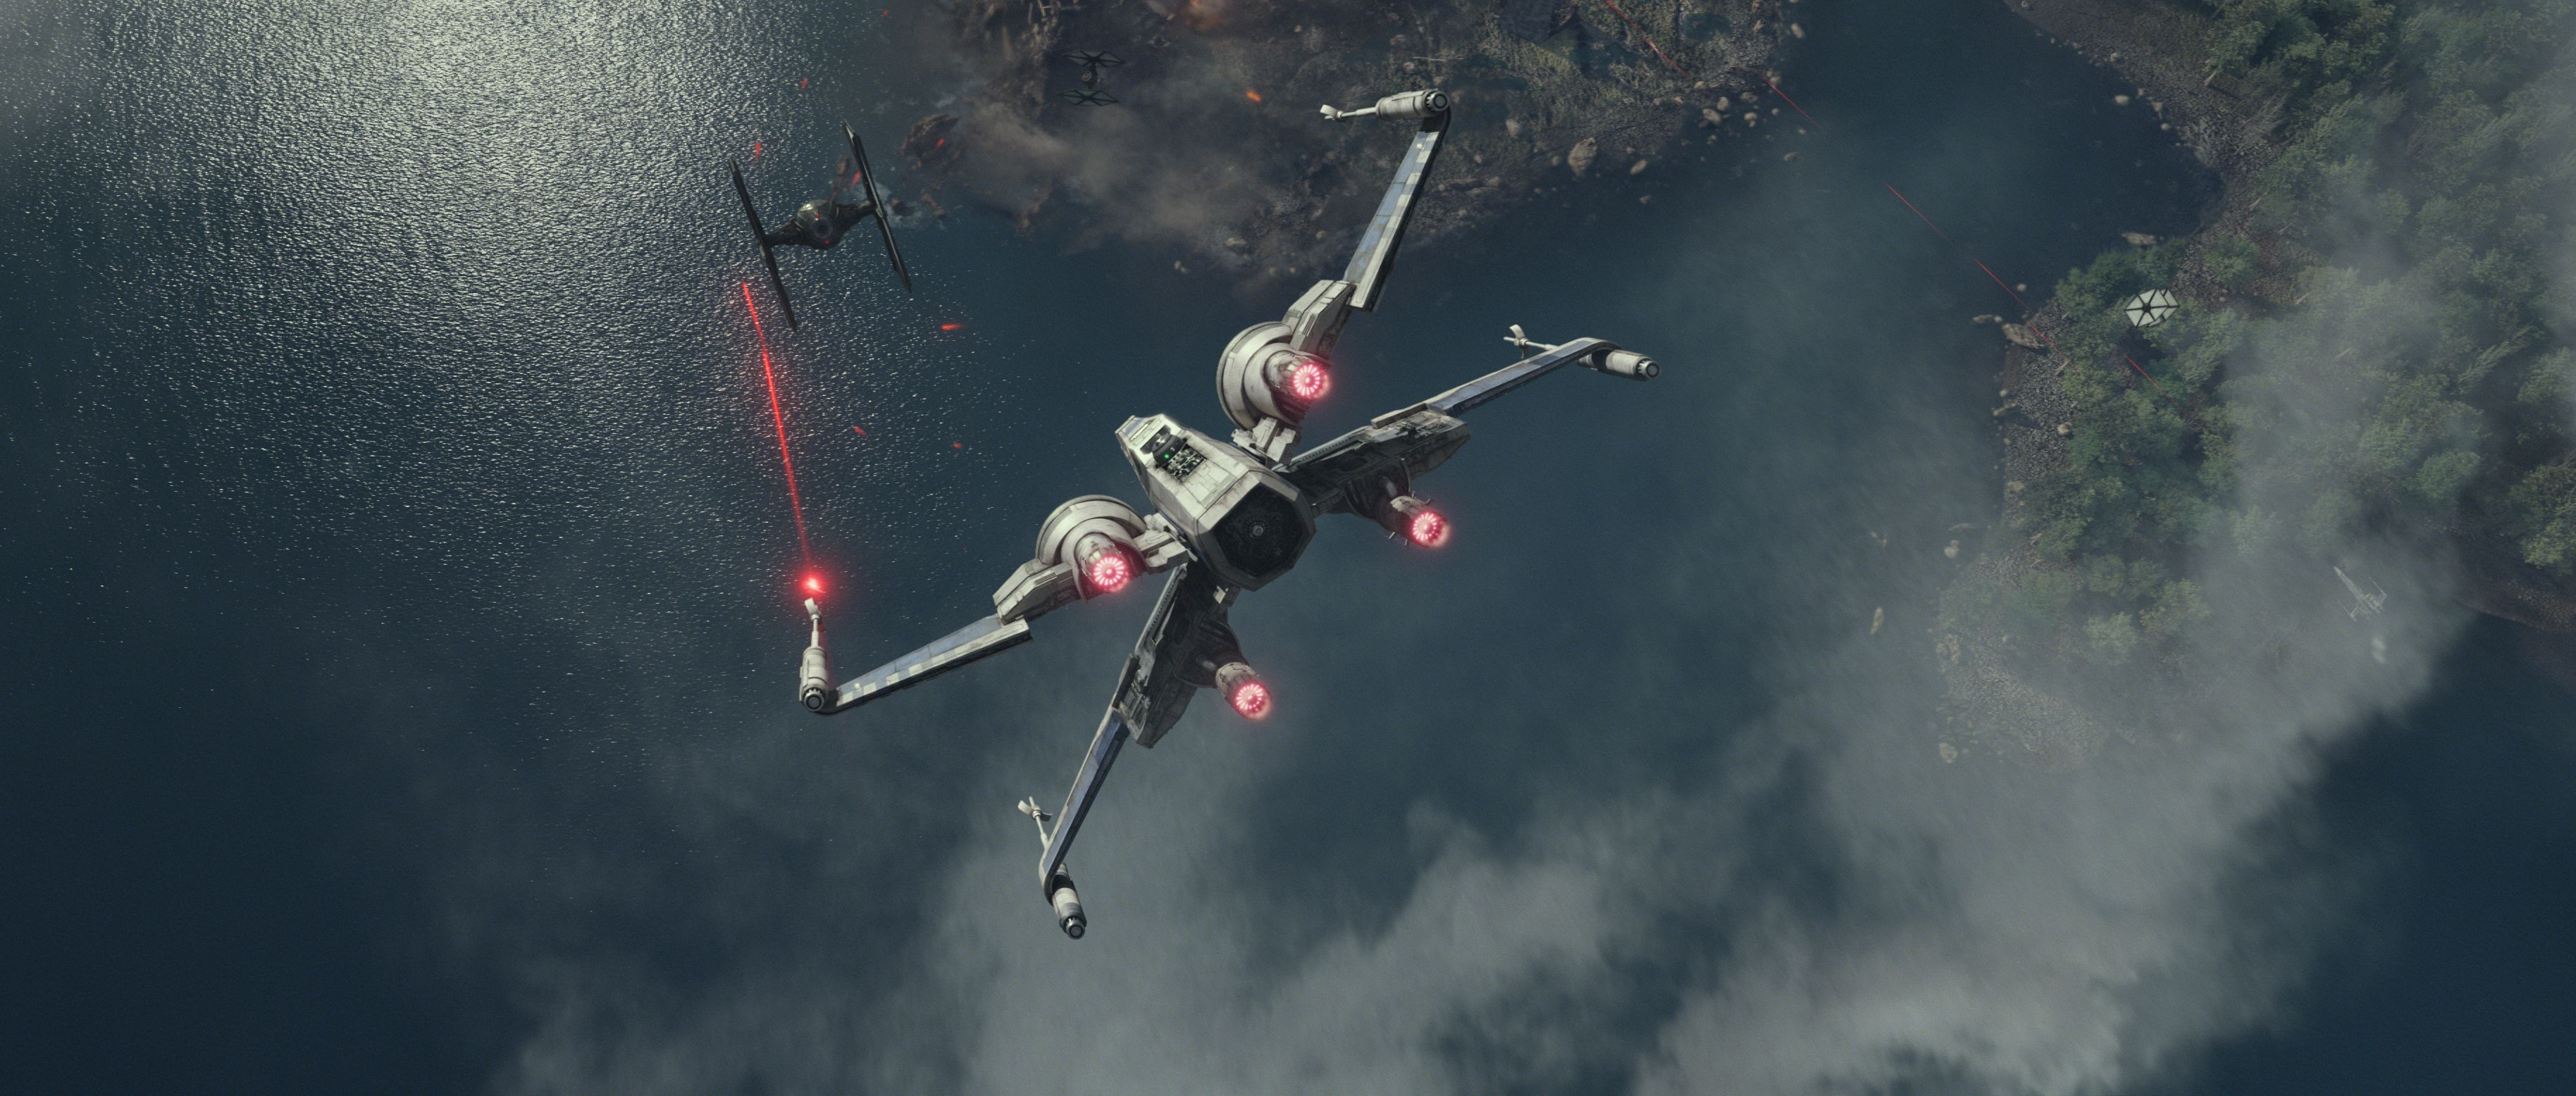 Star Wars 7 Images Are Perfect For Desktop Wallpaper Collider